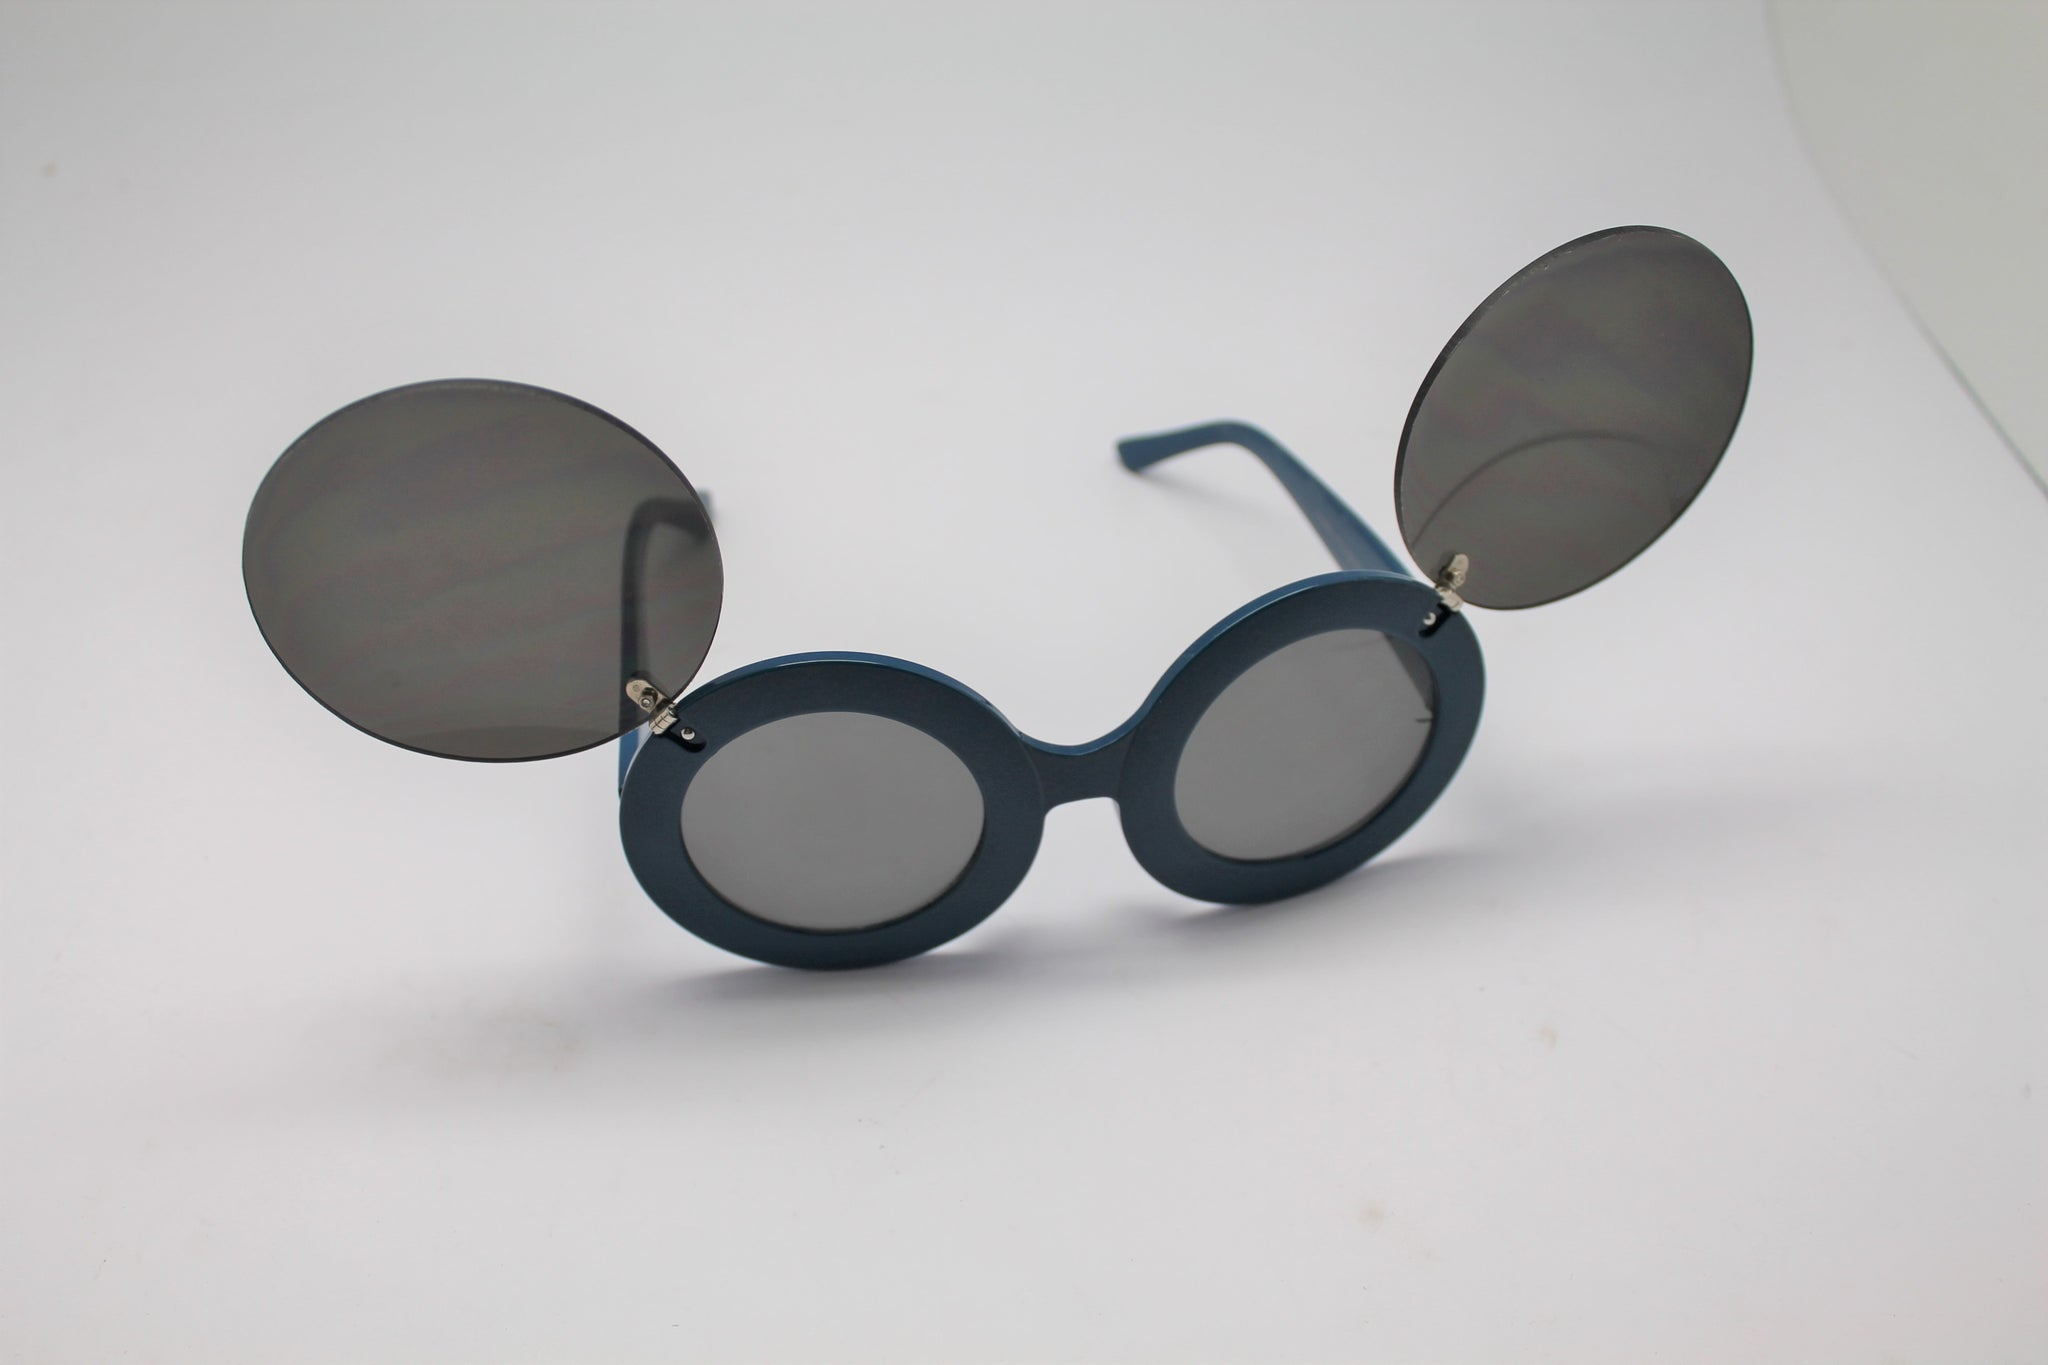 715c9aa51c Lady gaga Mickey Mouse Flip Retro Paparazzi Sunglasses Blue Frames and  lenses